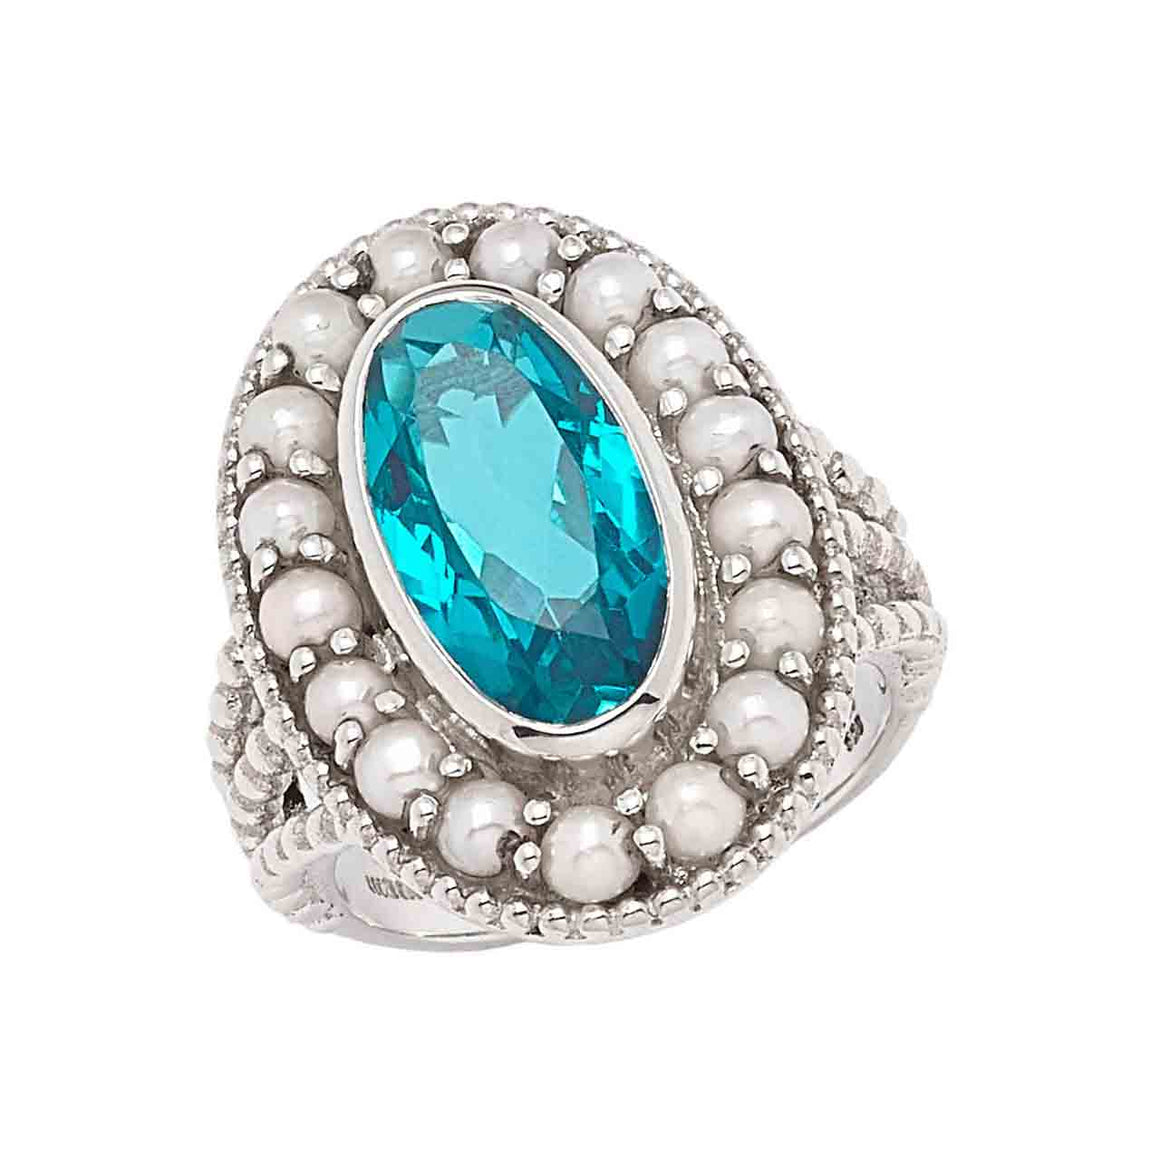 Paraiba Blue Quartz and Feshwater Pearl Ring